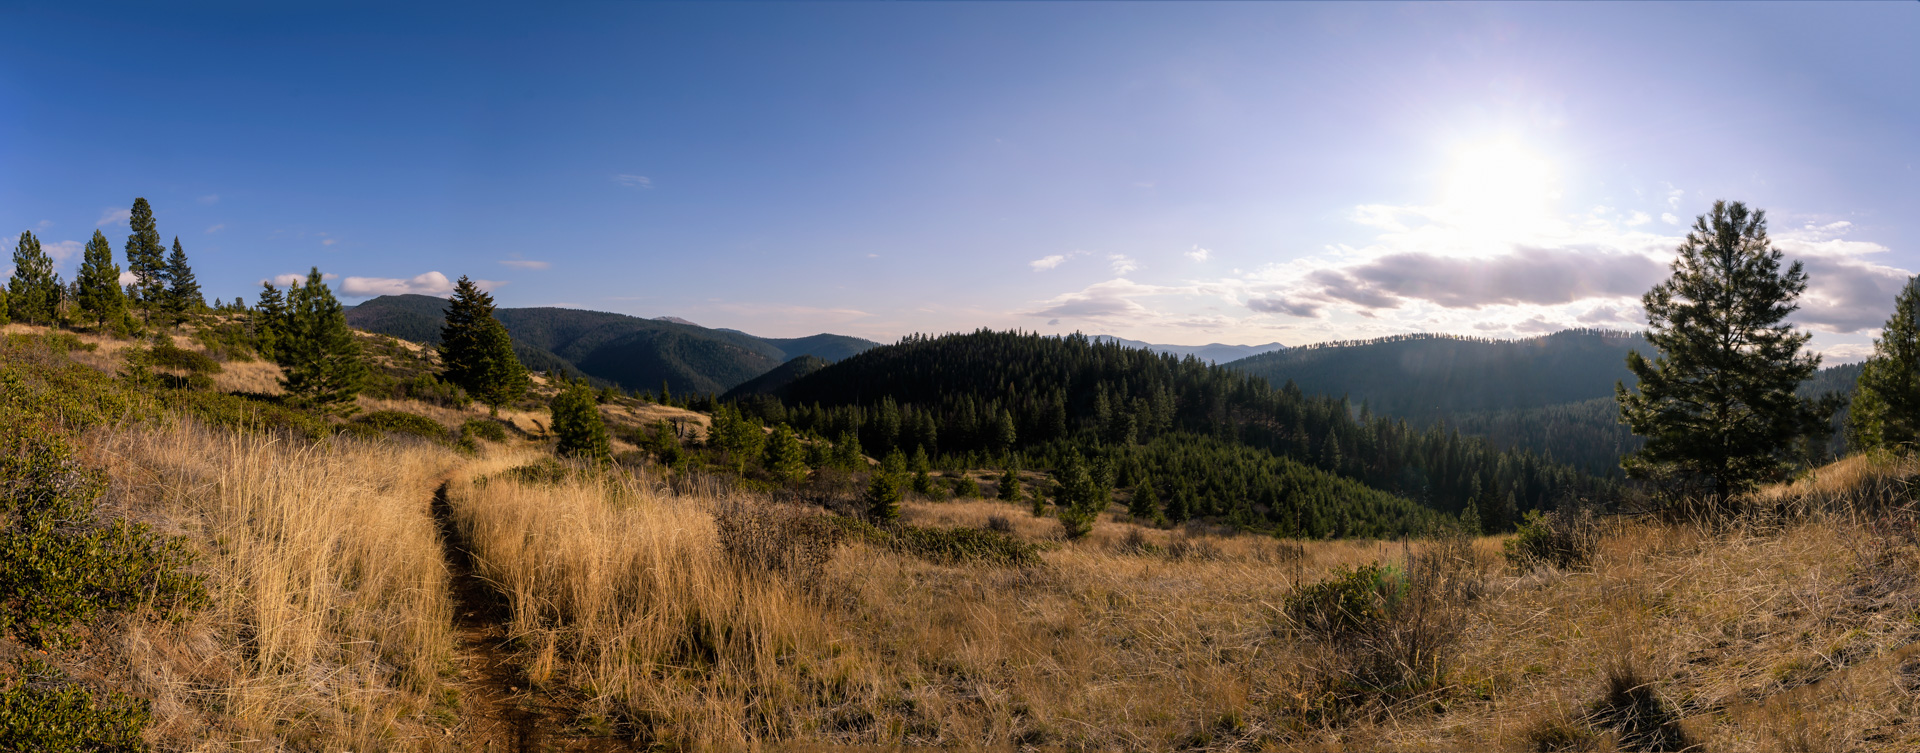 The view from above Sawmill Gulch